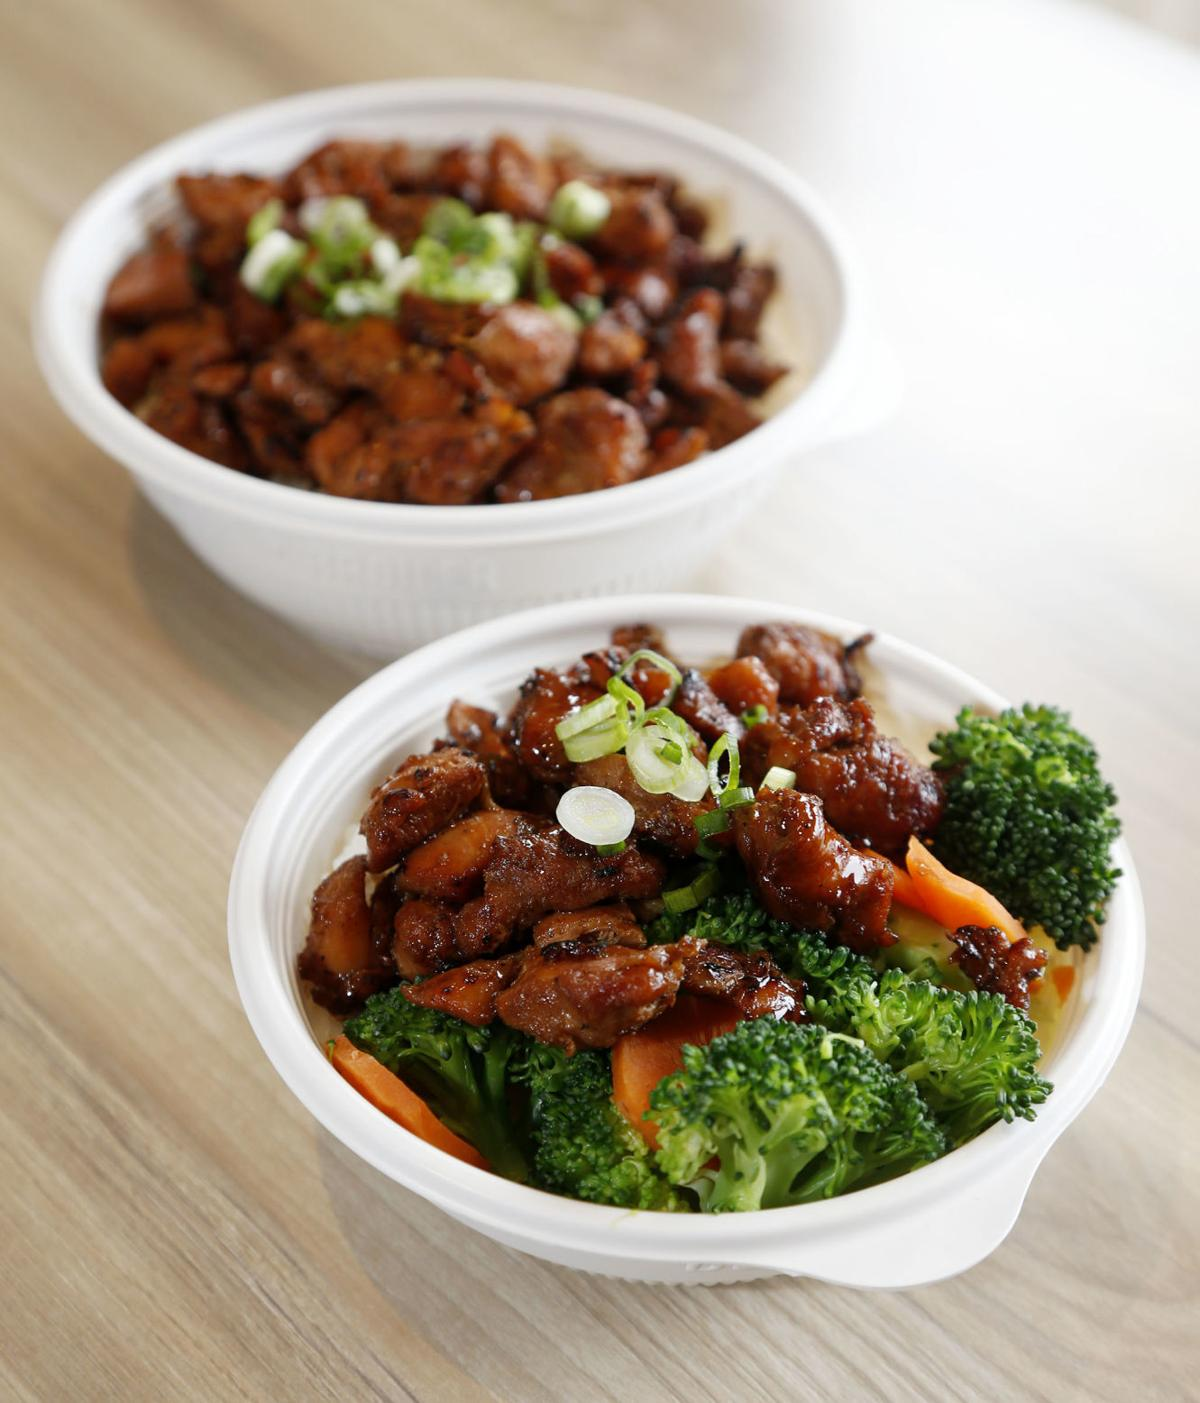 Flame Broiler chicken bowls